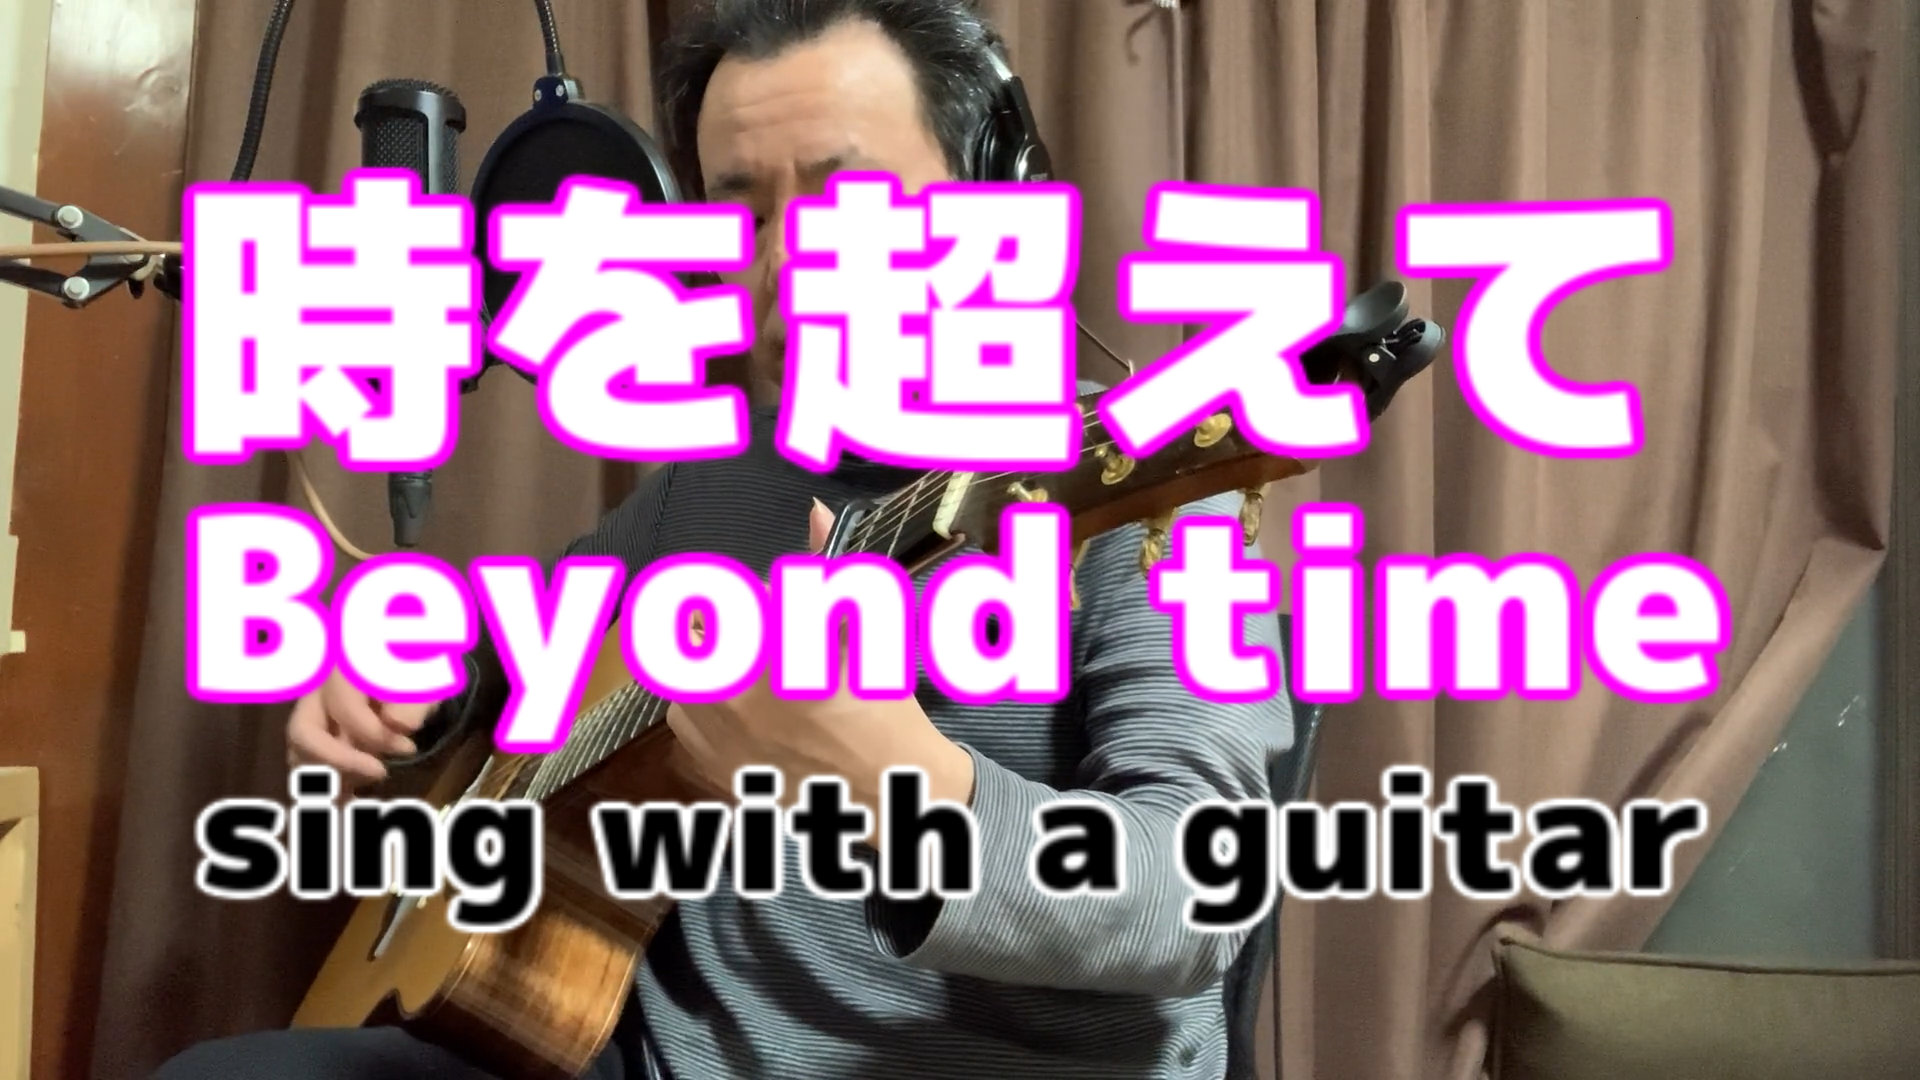 時を超えて-Beyond time- sing with a guitar